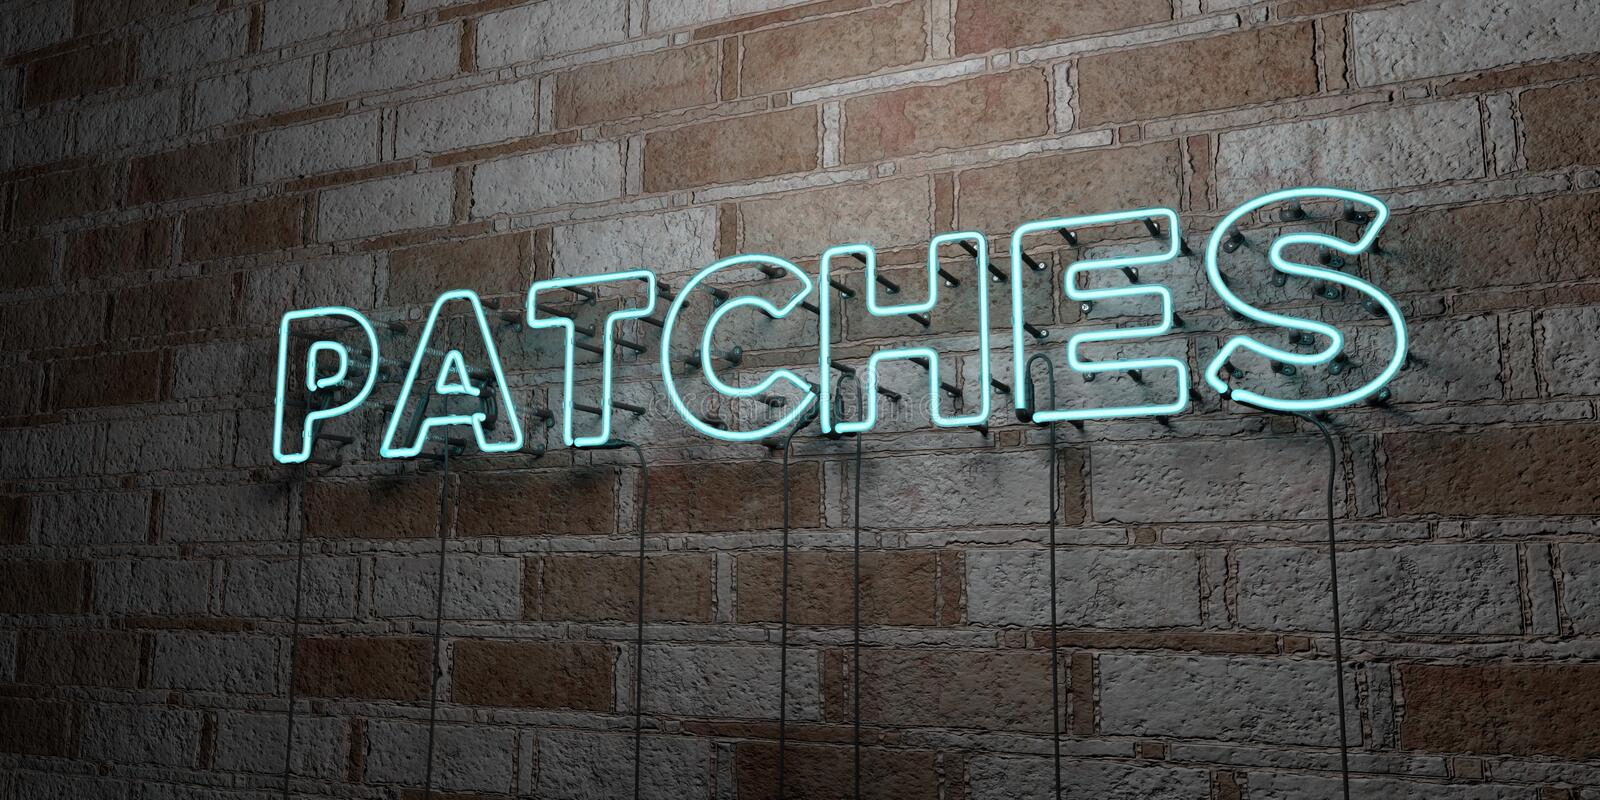 PATCHES - Glowing Neon Sign on stonework wall - 3D rendered royalty free stock illustration. Can be used for online banner ads and direct mailers vector illustration